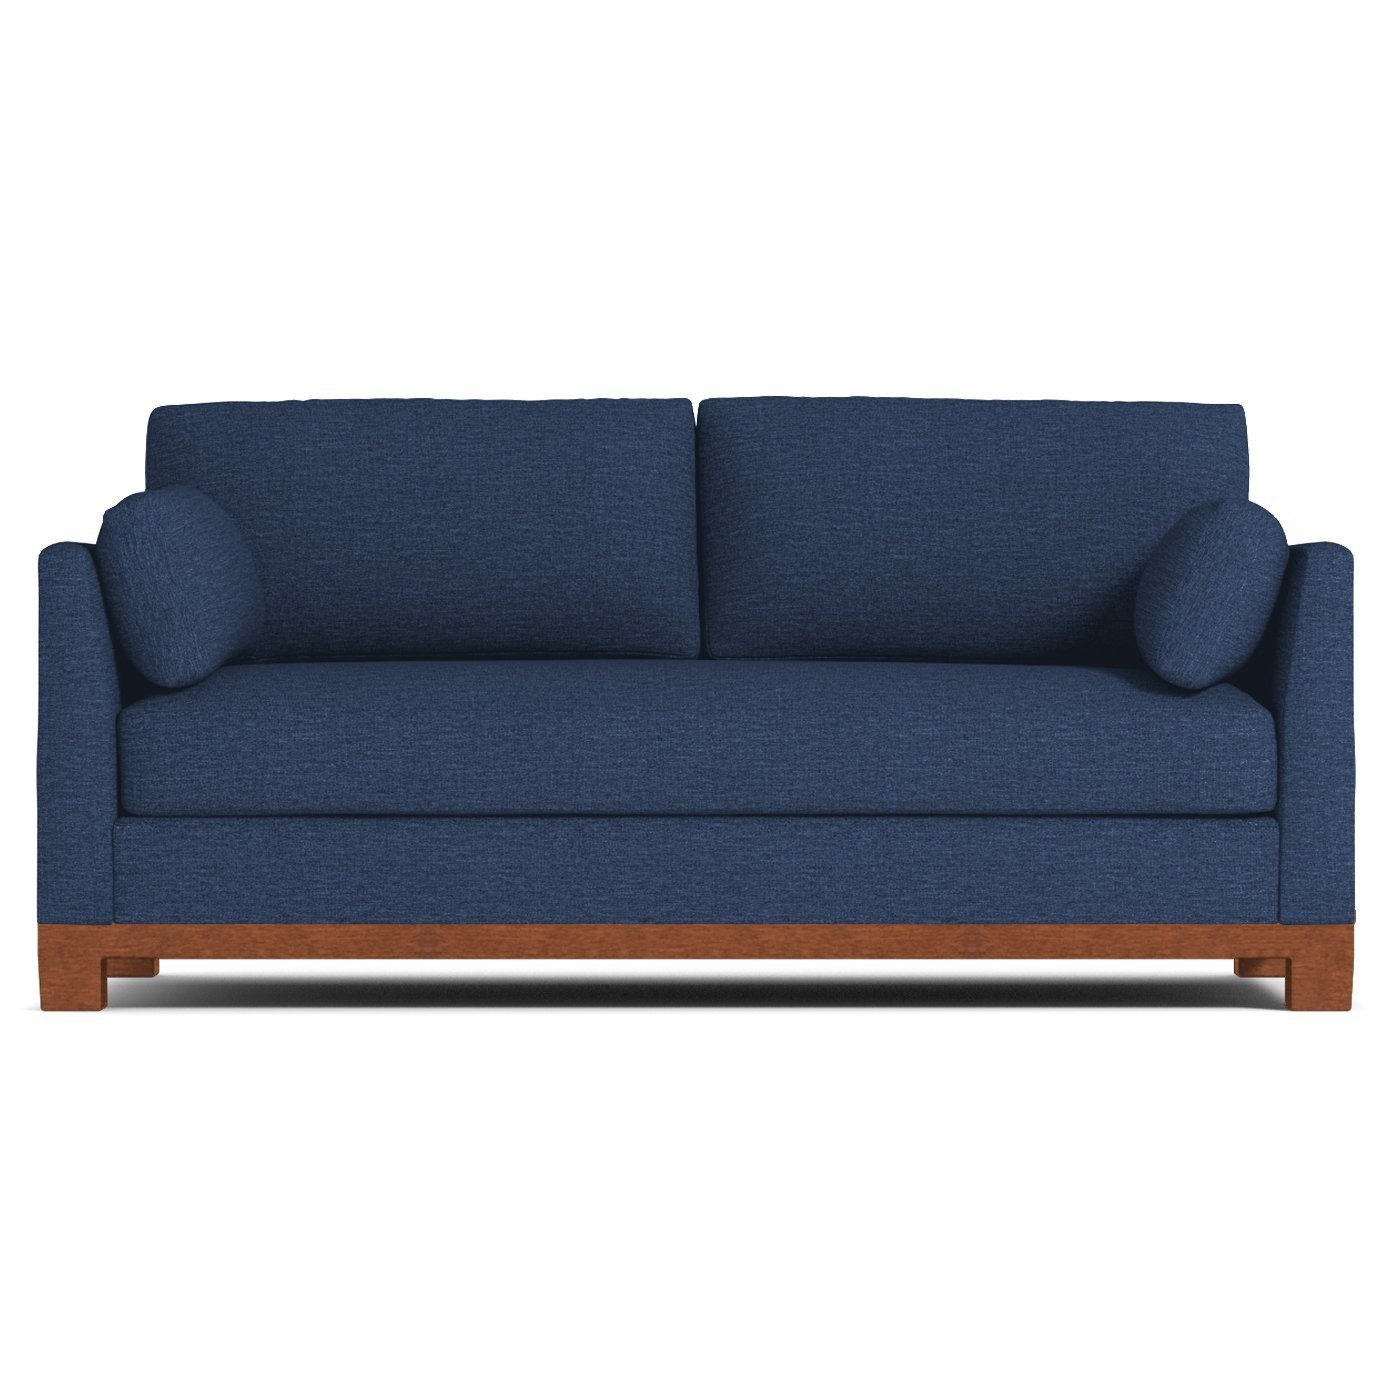 Queen Size Sleeper sofa Wonderful Avalon Queen Size Sleeper sofa Choice Of Fabrics Apt2b Construction